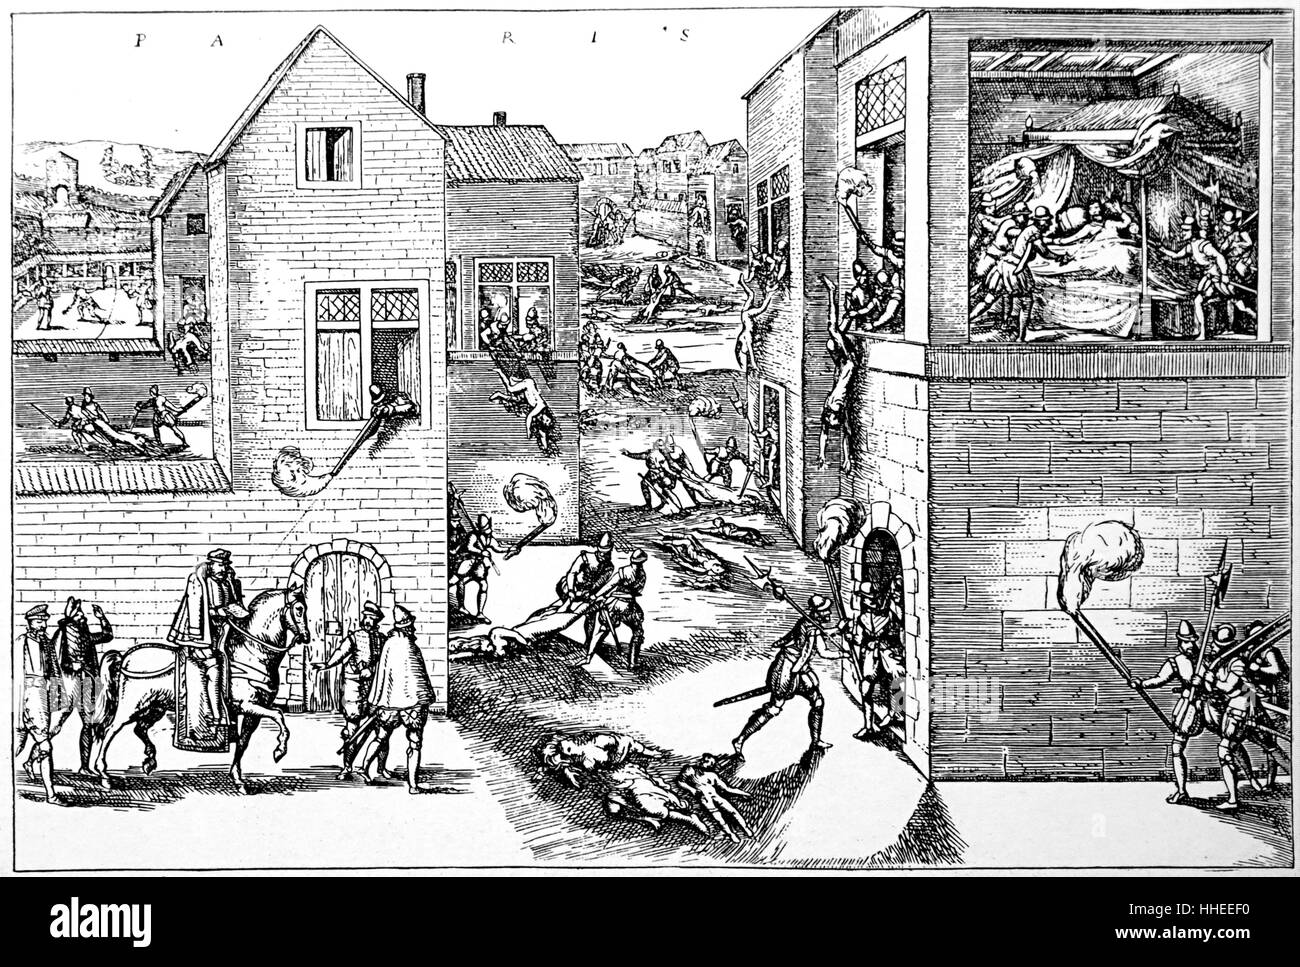 Engraving depicting the assassination of Gaspard II de Coligny (1519-1572) a French nobleman and admiral, during the St. Bartholomew's Day Massacre. Dated 16th Century Stock Photo